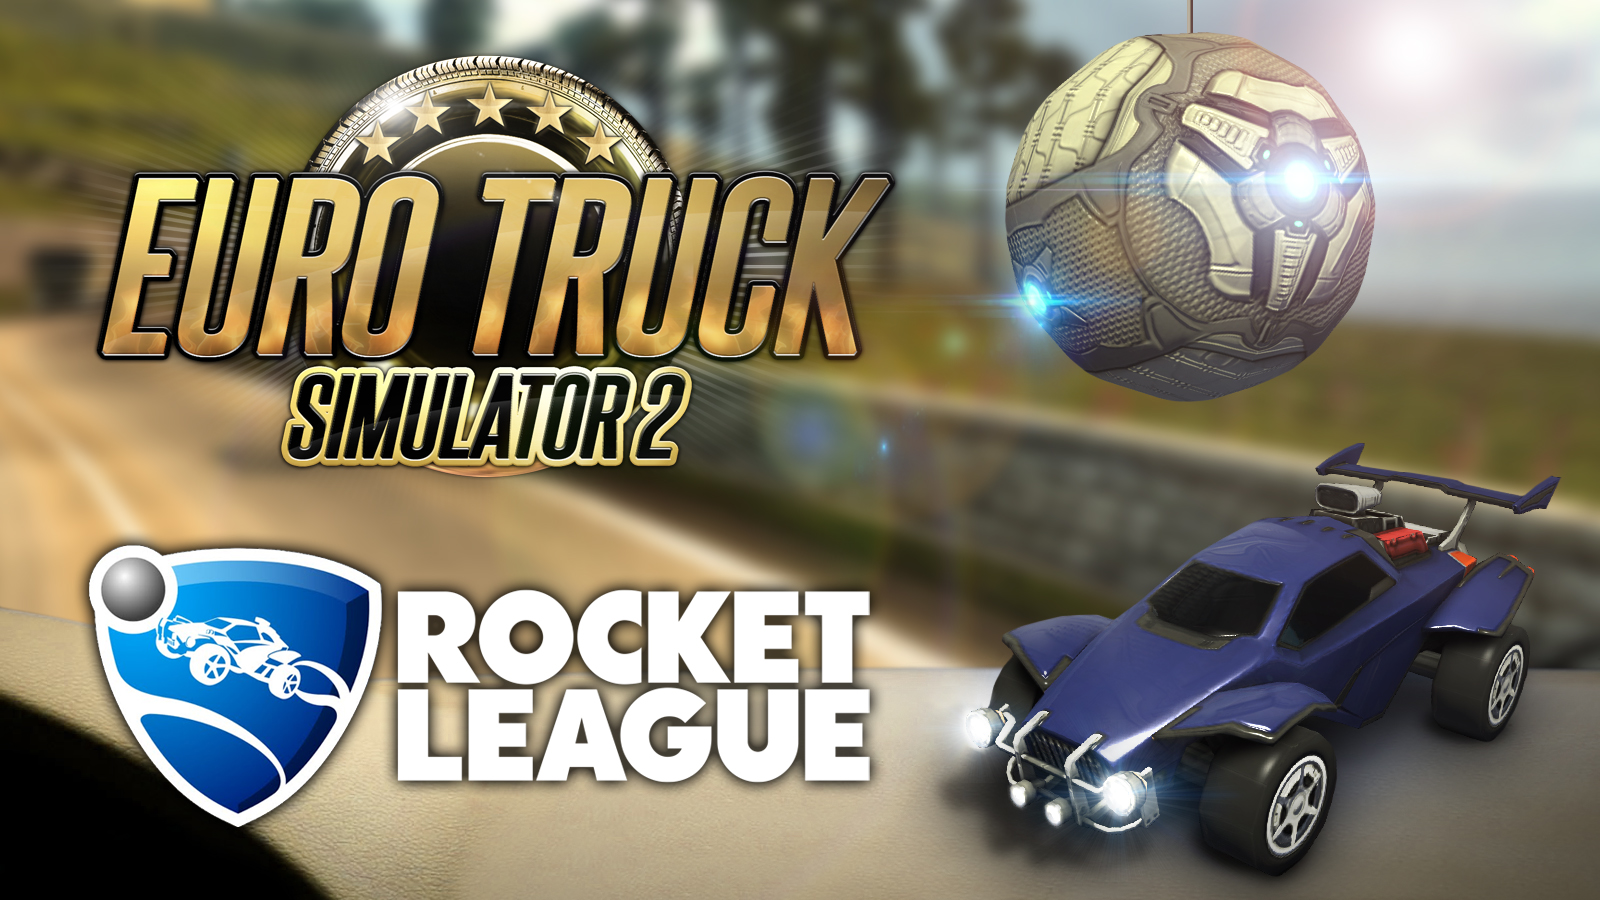 Cross-promo with Rocket League: Delivering Ball to Goal